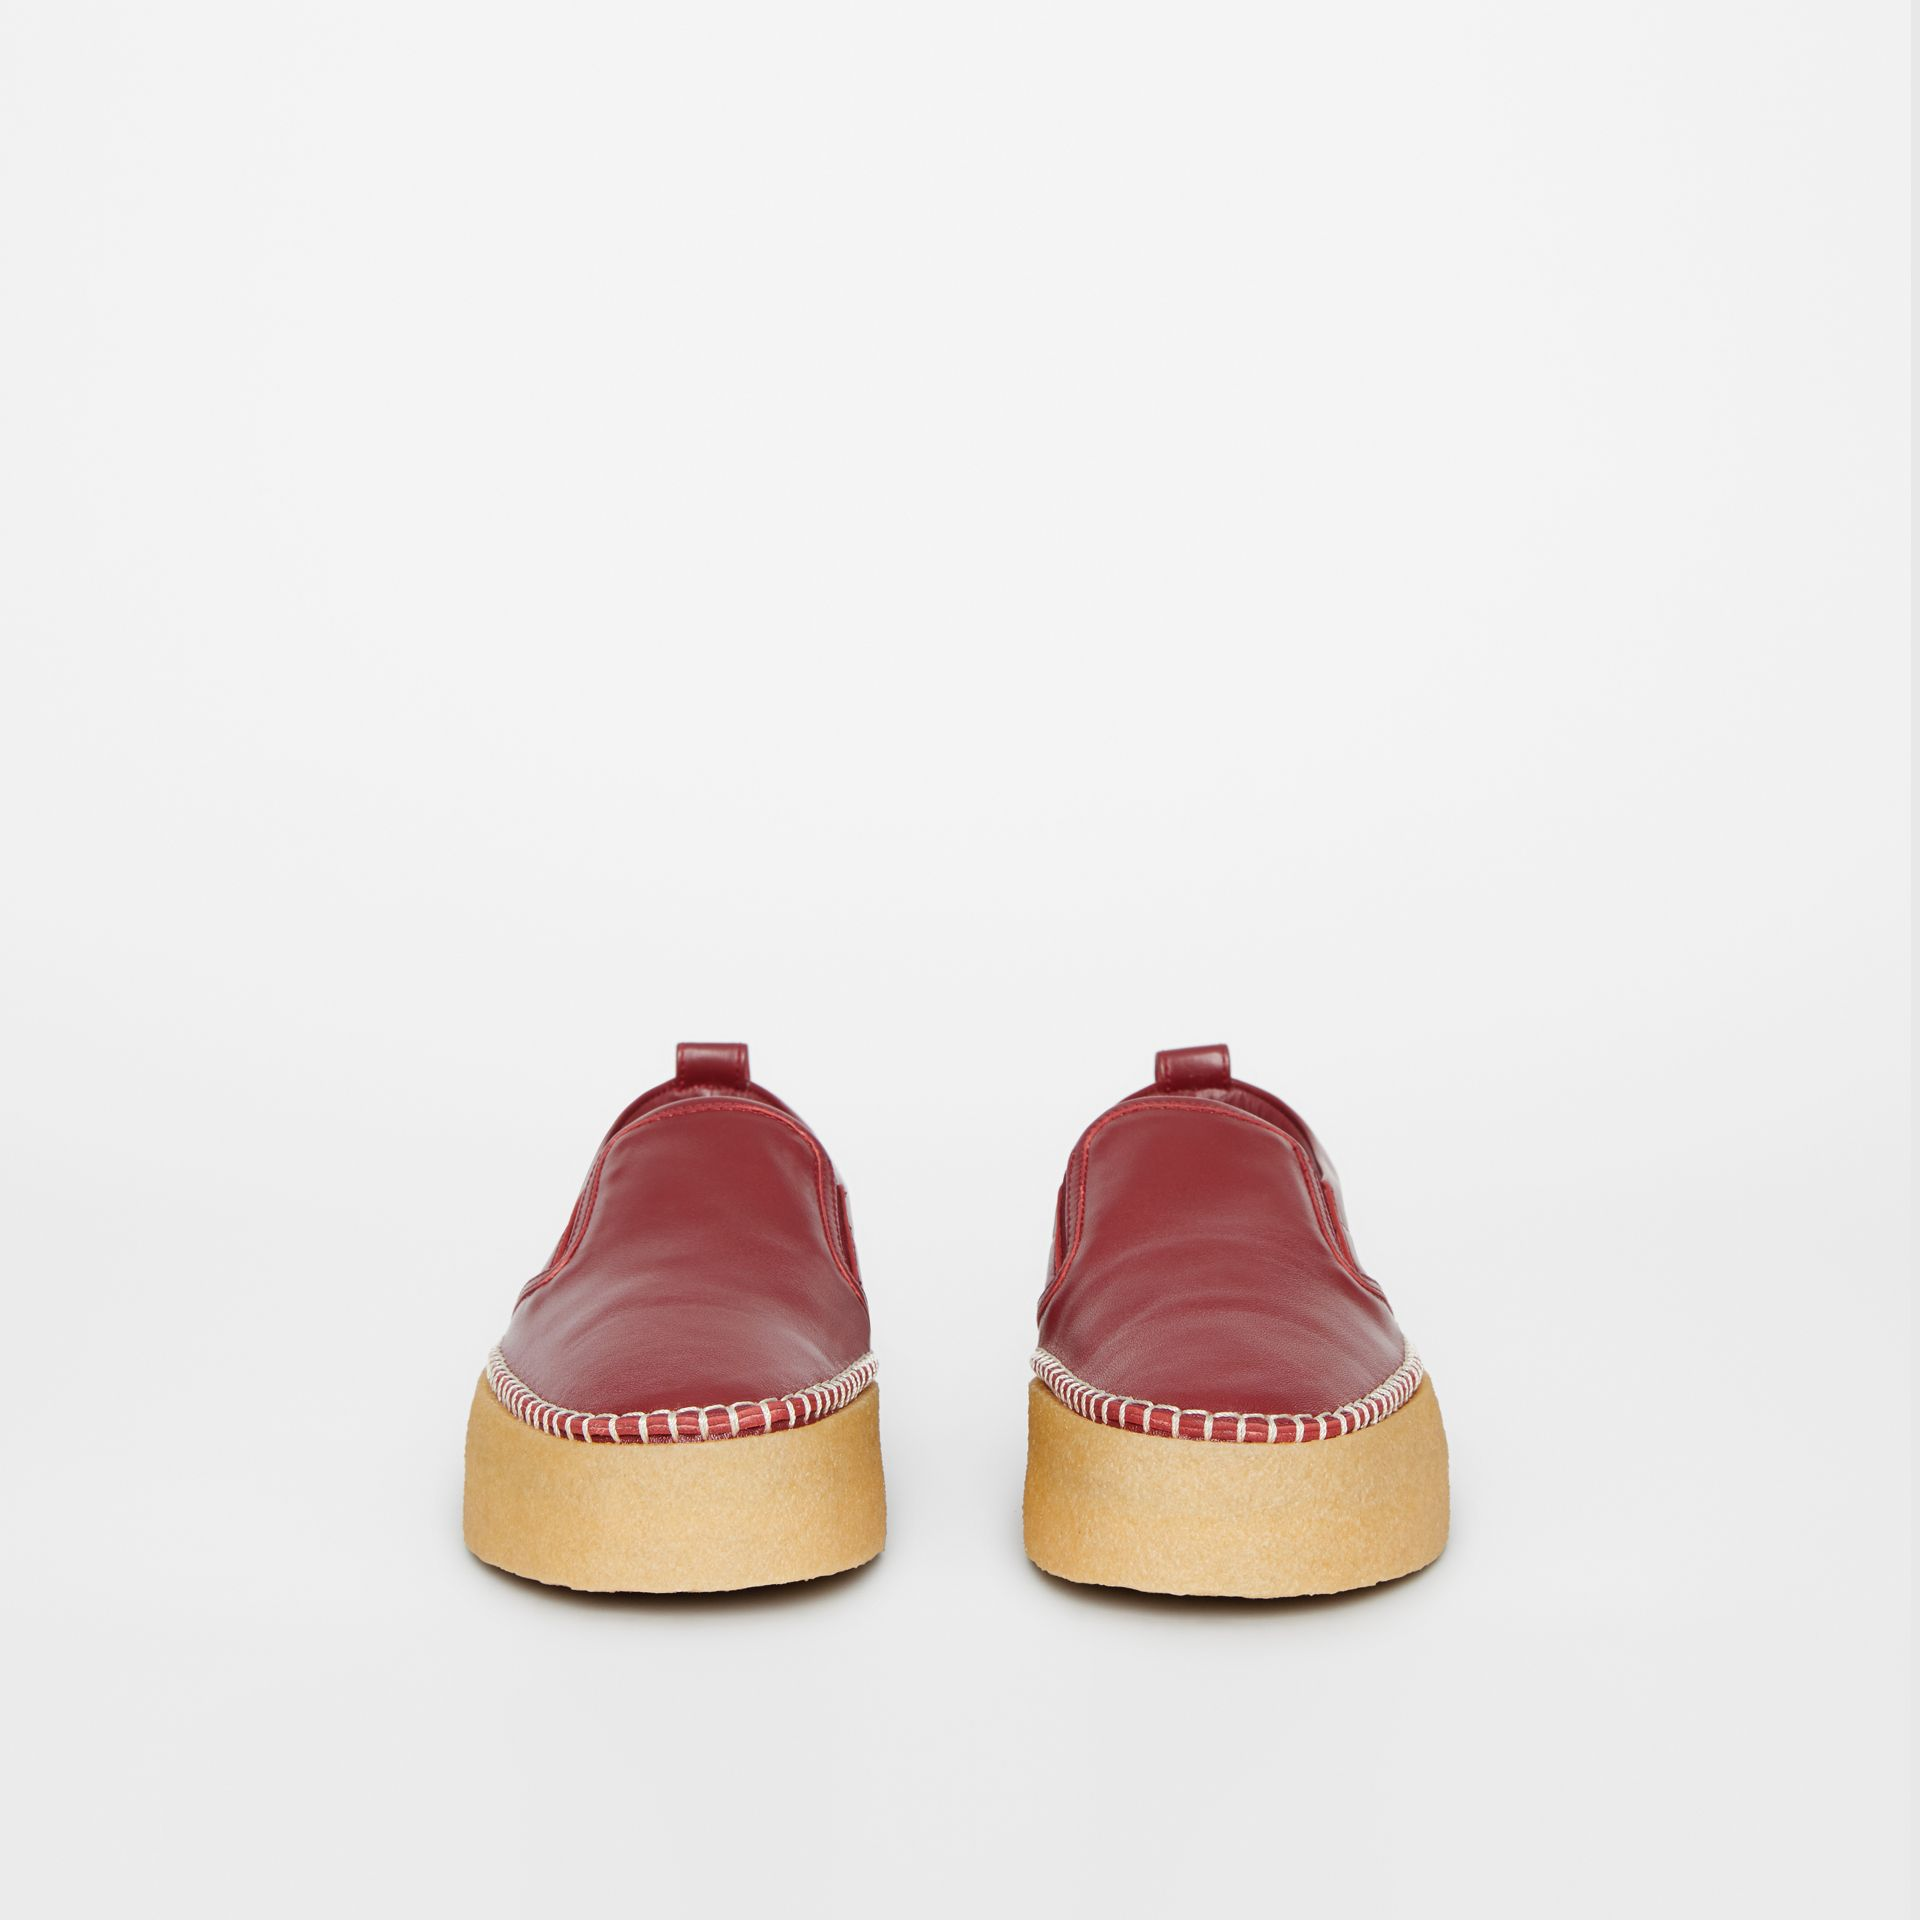 Leather Slip-on Sneakers in Bordeaux - Women | Burberry United States - gallery image 3